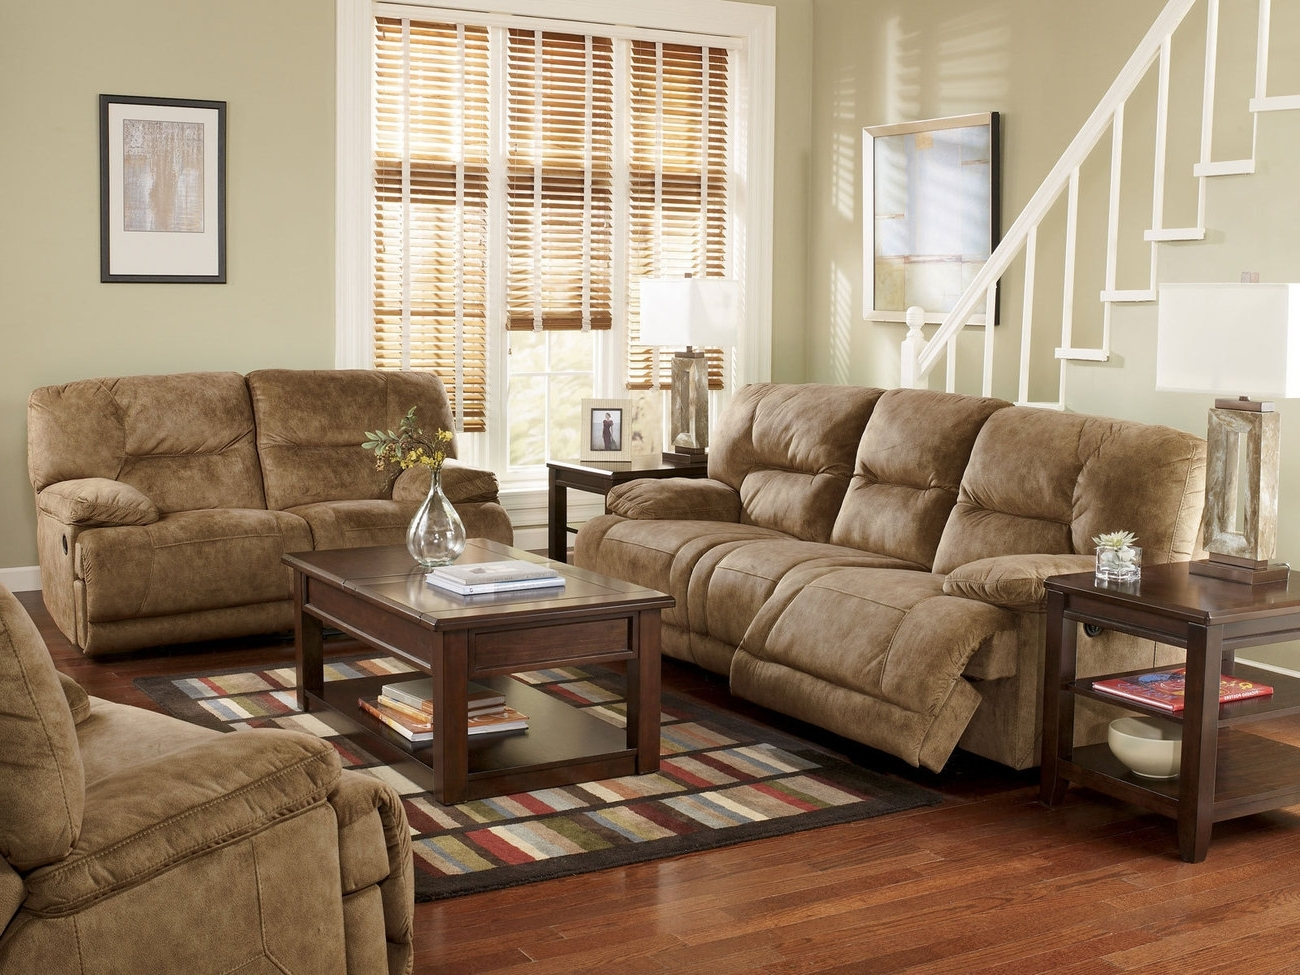 Living Room Sofa And Chair Sets Regarding Widely Used Avery Grey Fabric Sofa And Loveseat Set Steal Furniture Living (View 11 of 20)